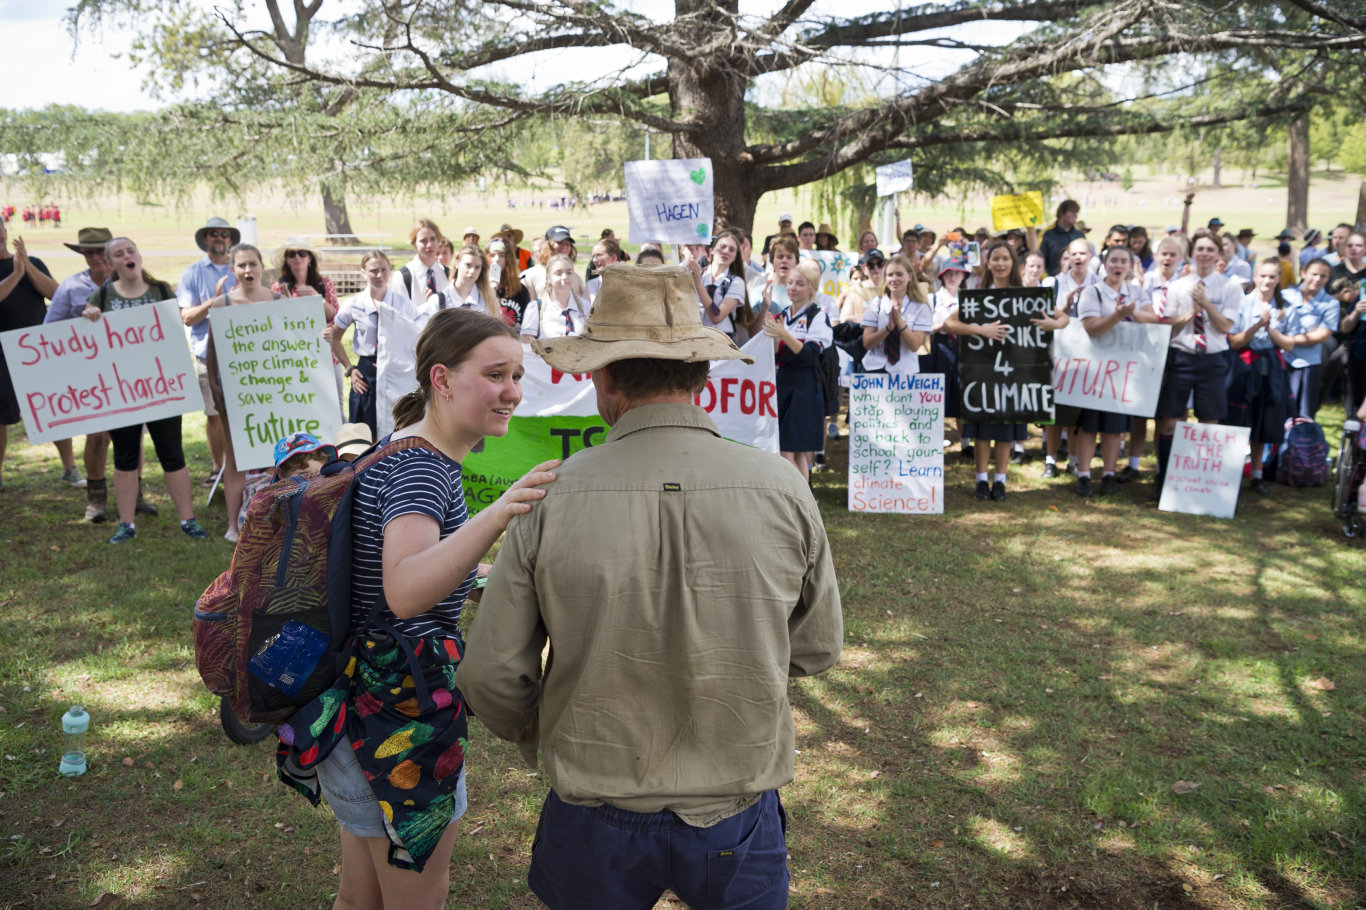 Dairy farmer David Vonhoff is comforted by rally organiser Rinny Power after giving an emotional talk to the student protest for action on climate change for the national School Strike for Climate, Friday, March 15, 2019.